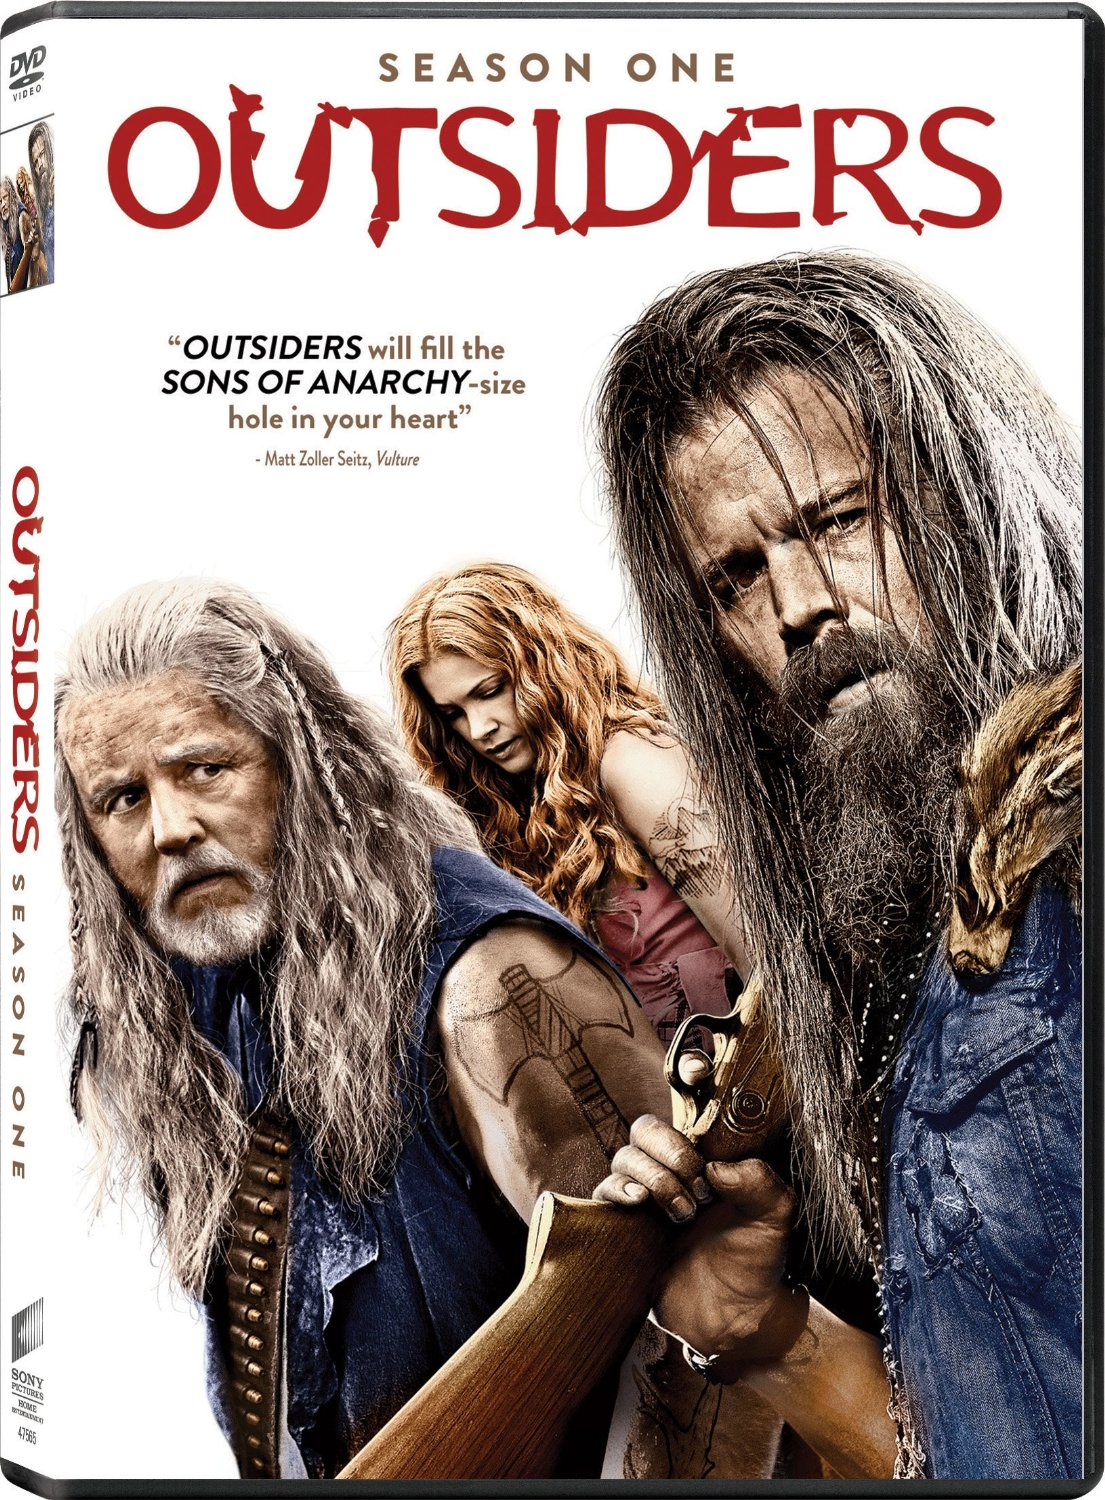 - Outsiders: Season One